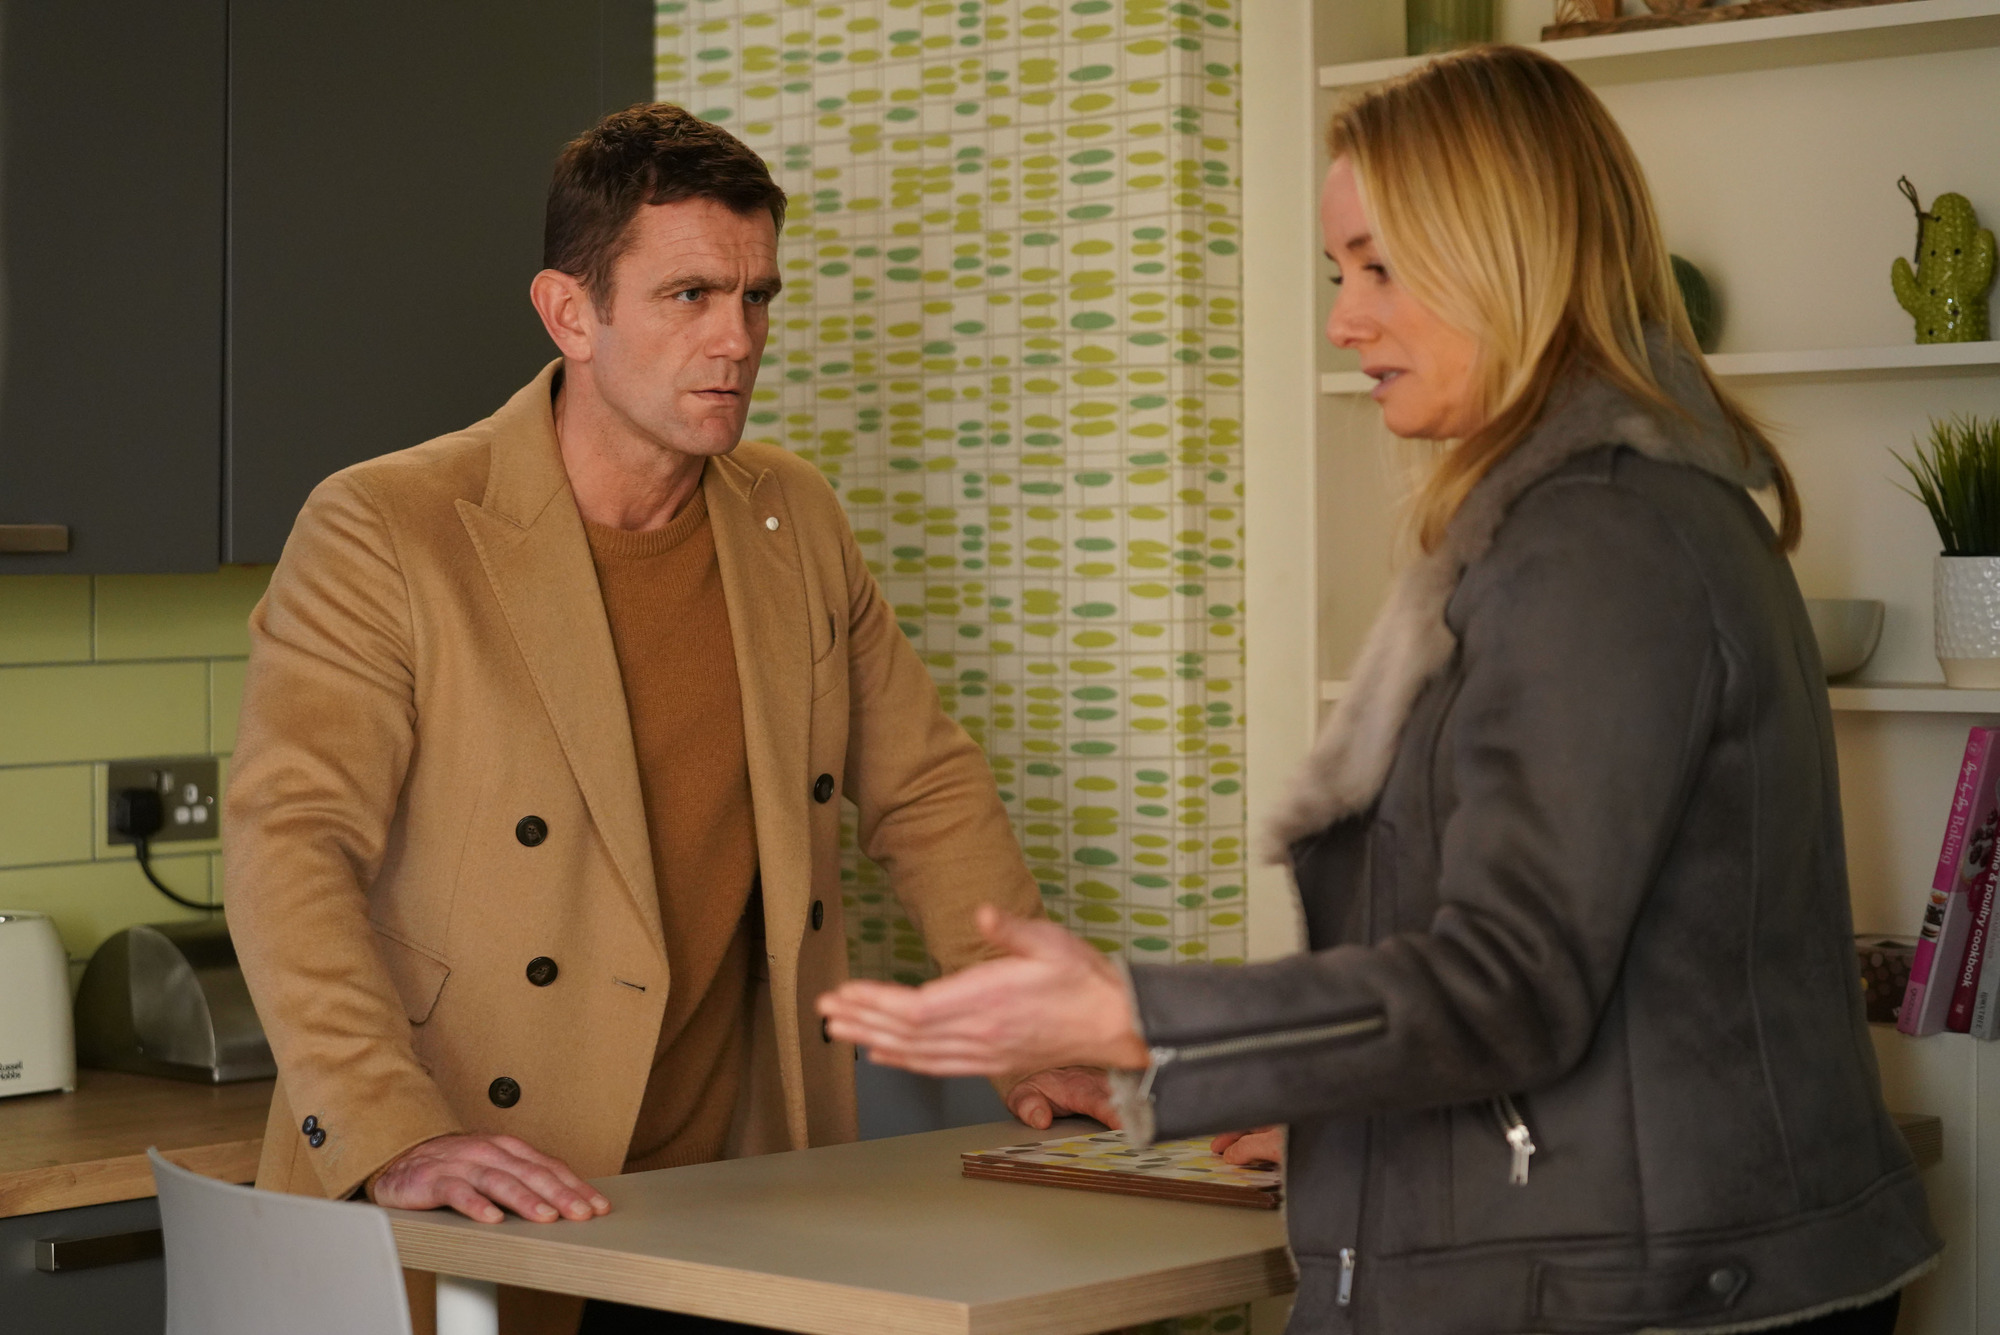 Will Jack agree to help Mel?